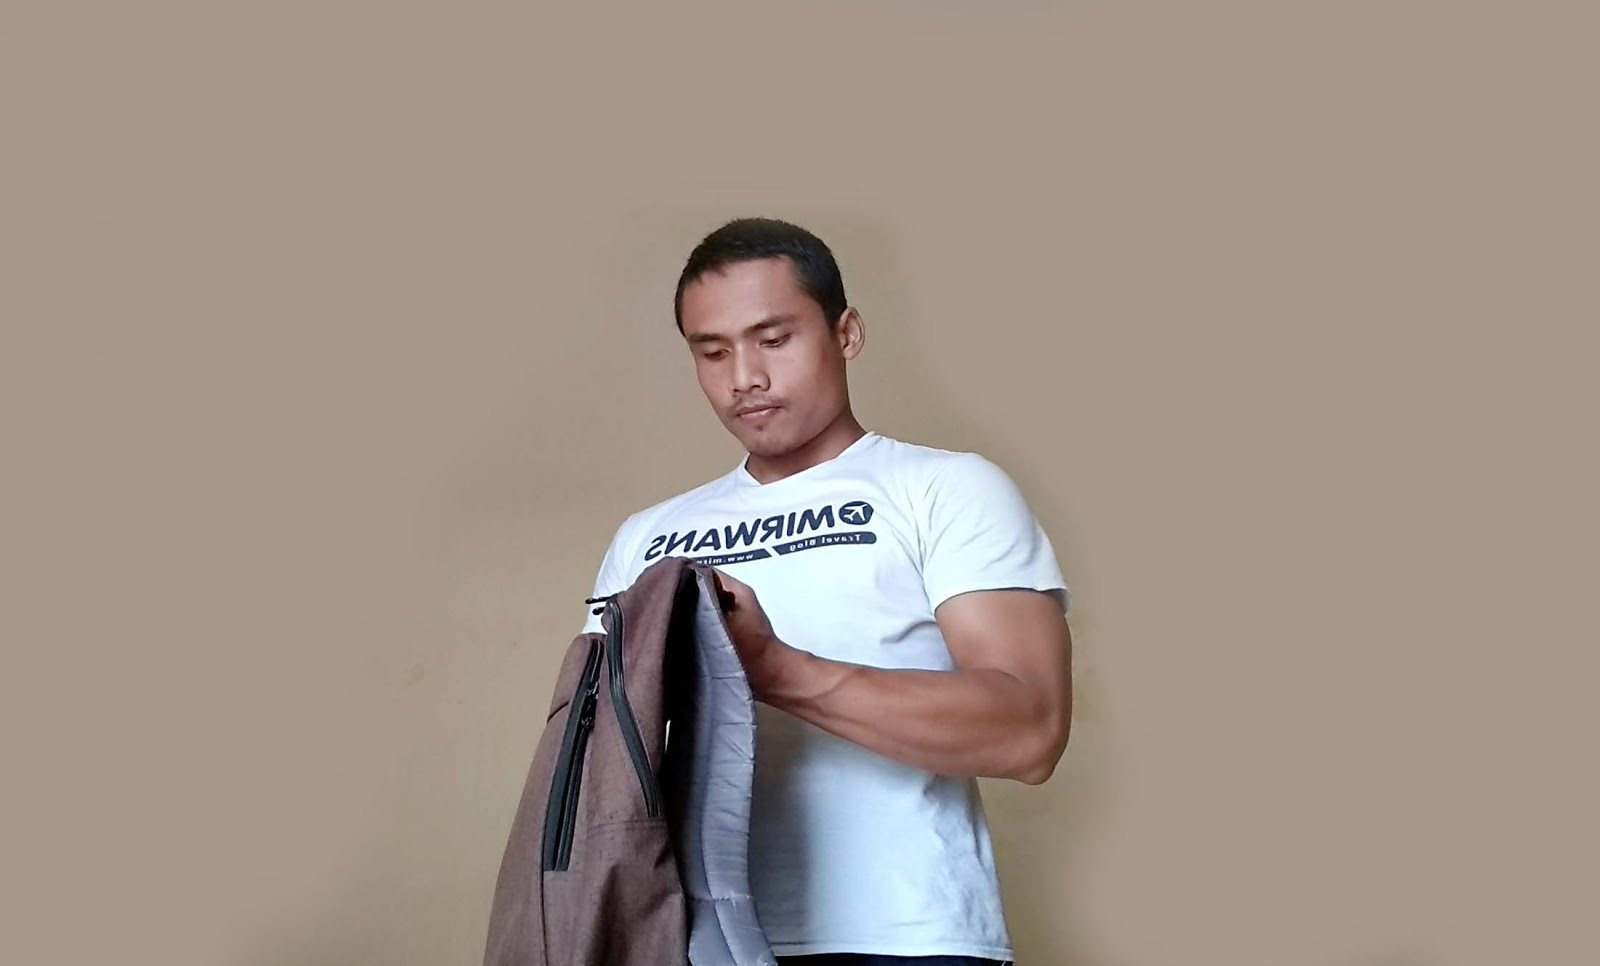 You can do weight training to build muscle at office. You can actually maximize the facilities of the office, such as laptop bags or old school monitors, to train muscles and burn calories.